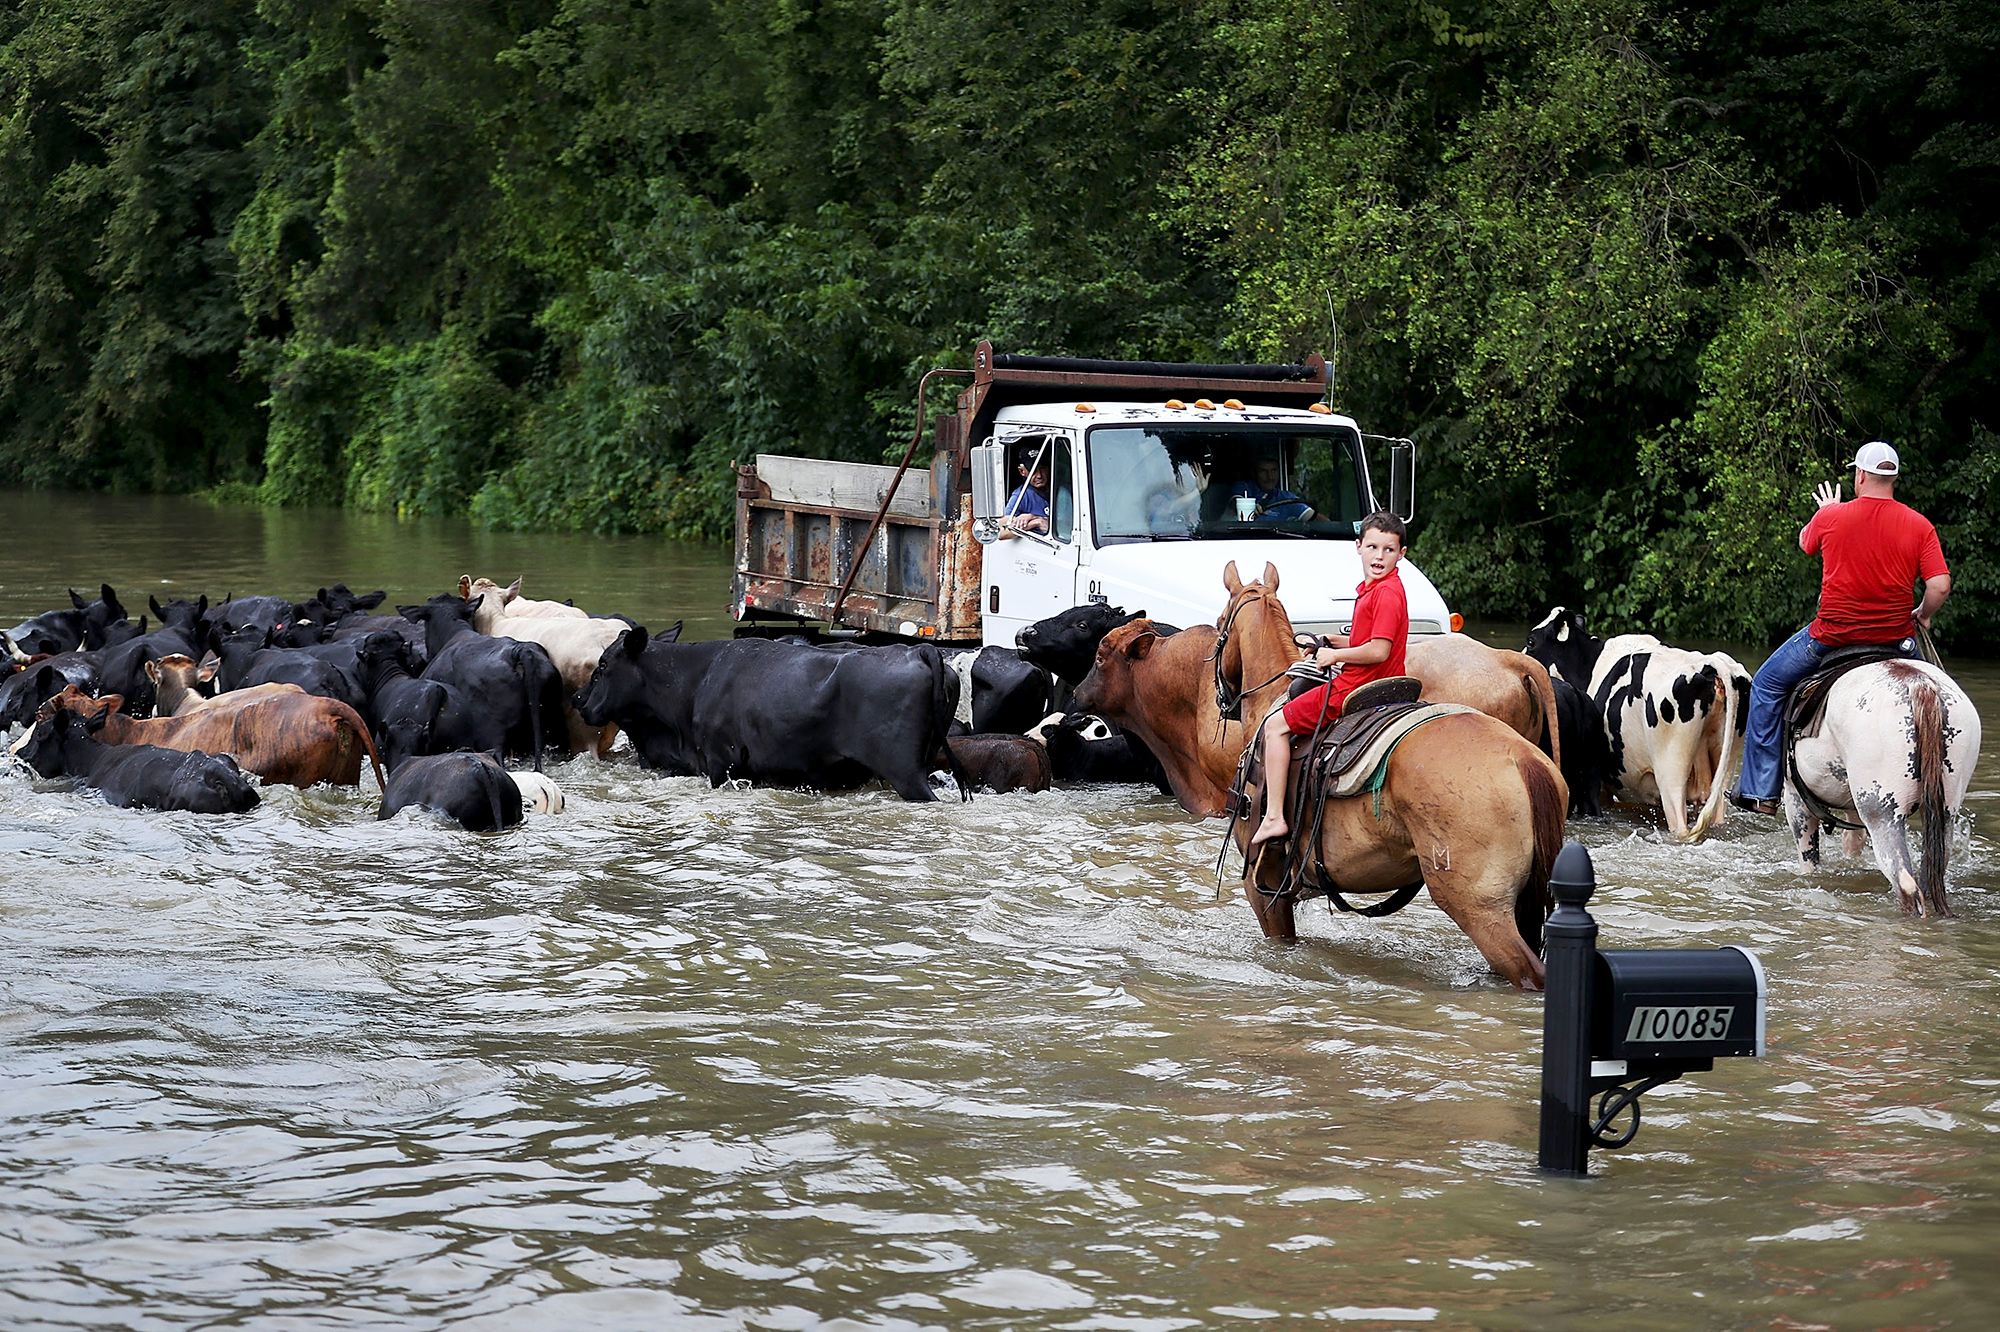 Cattle had to be driven through the waters of a flooded road, and then trucked to higher ground on Aug. 16, in Sorrento, La. About a third of the flooding in the state last month occurred outside the local flood plain. (Photo by Joe Raedle/Getty Images)